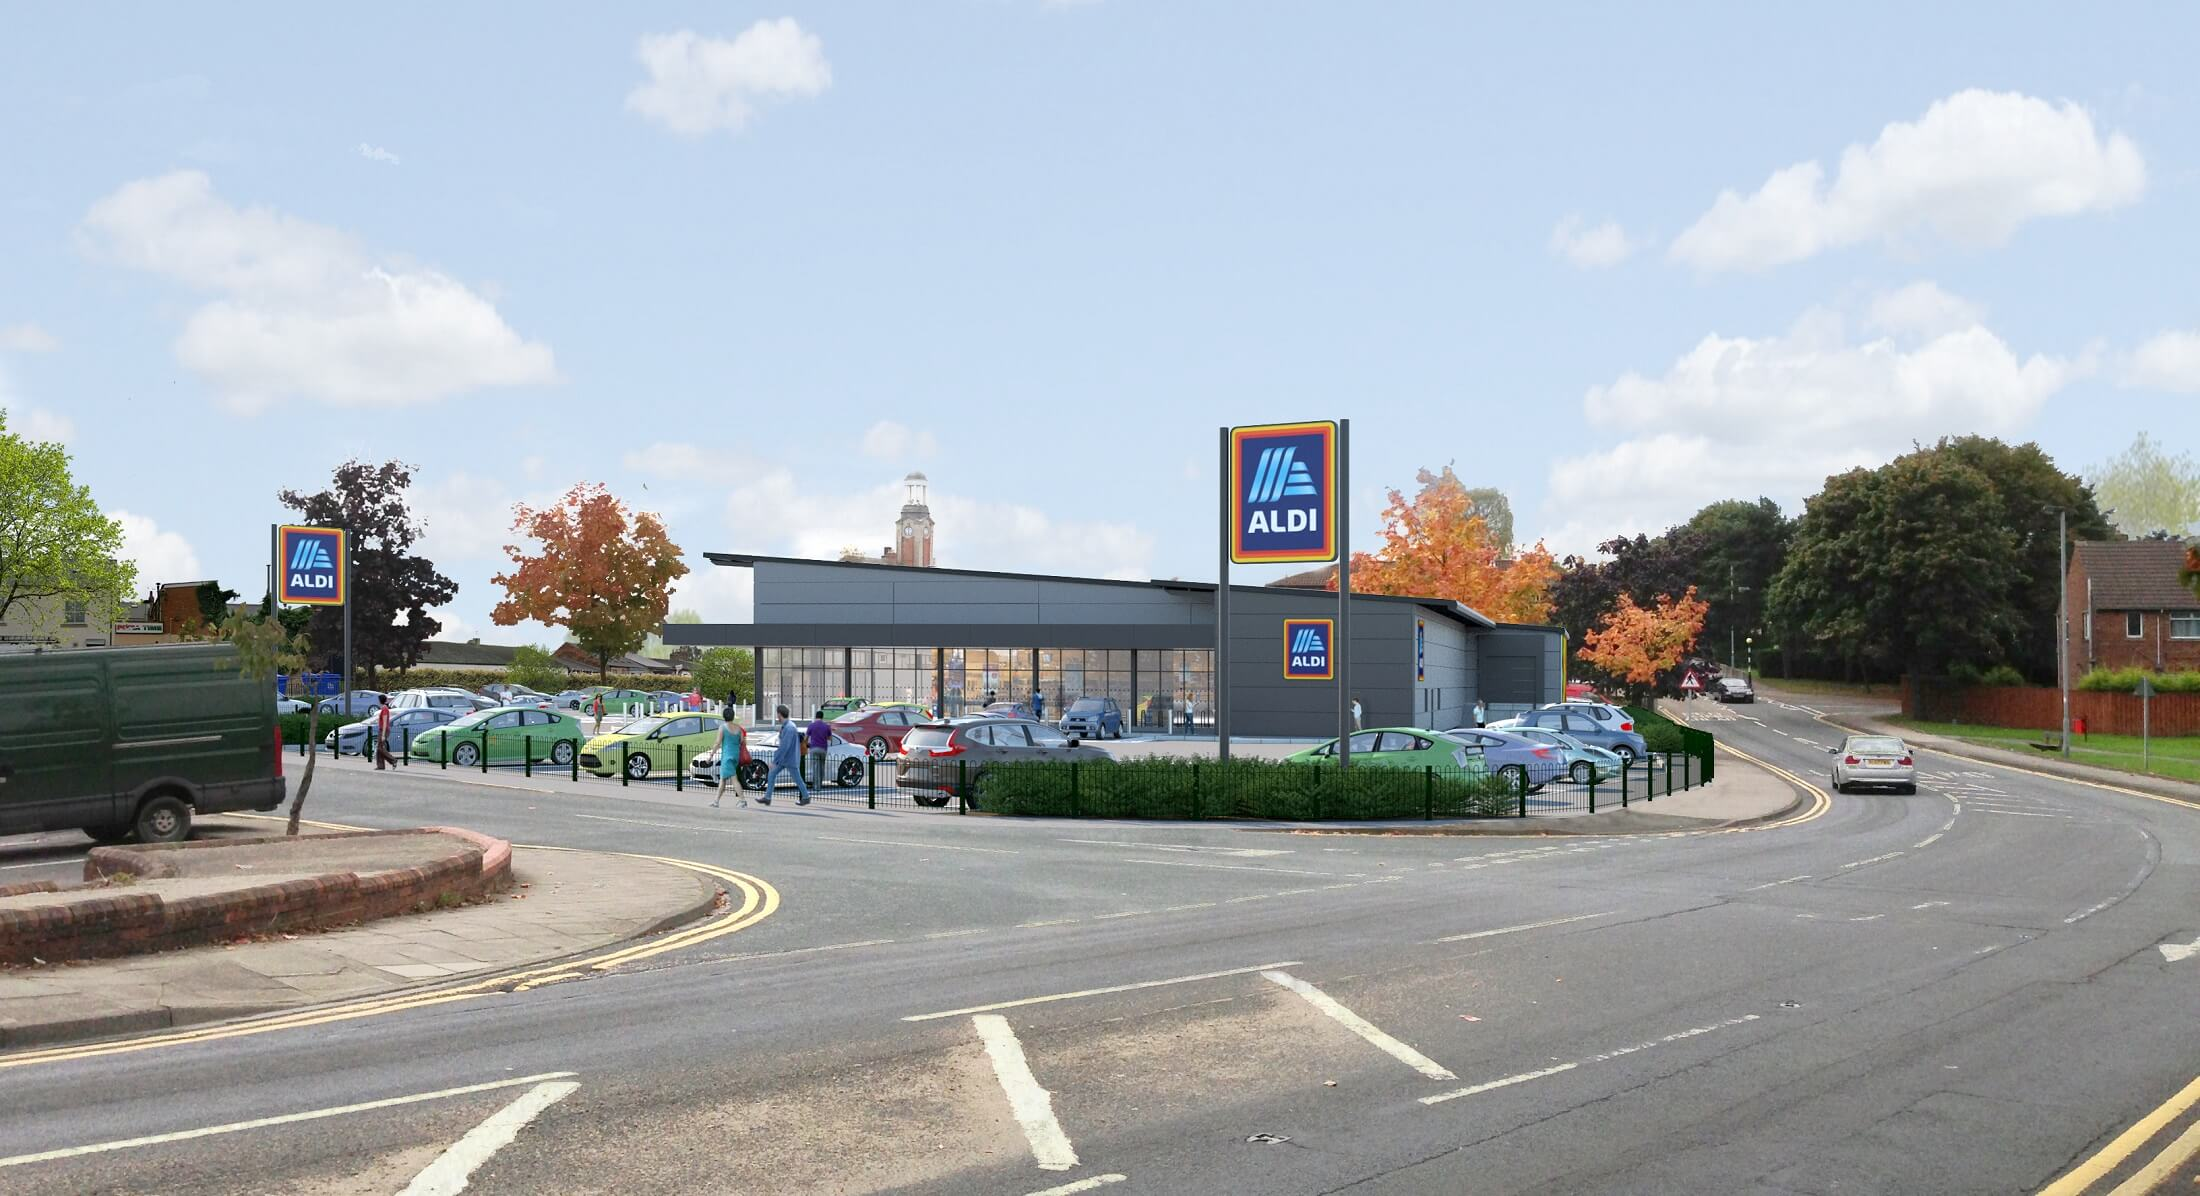 Image of how the new aldi store will look. It is the view from Oxford road and includes the new look store and car park.